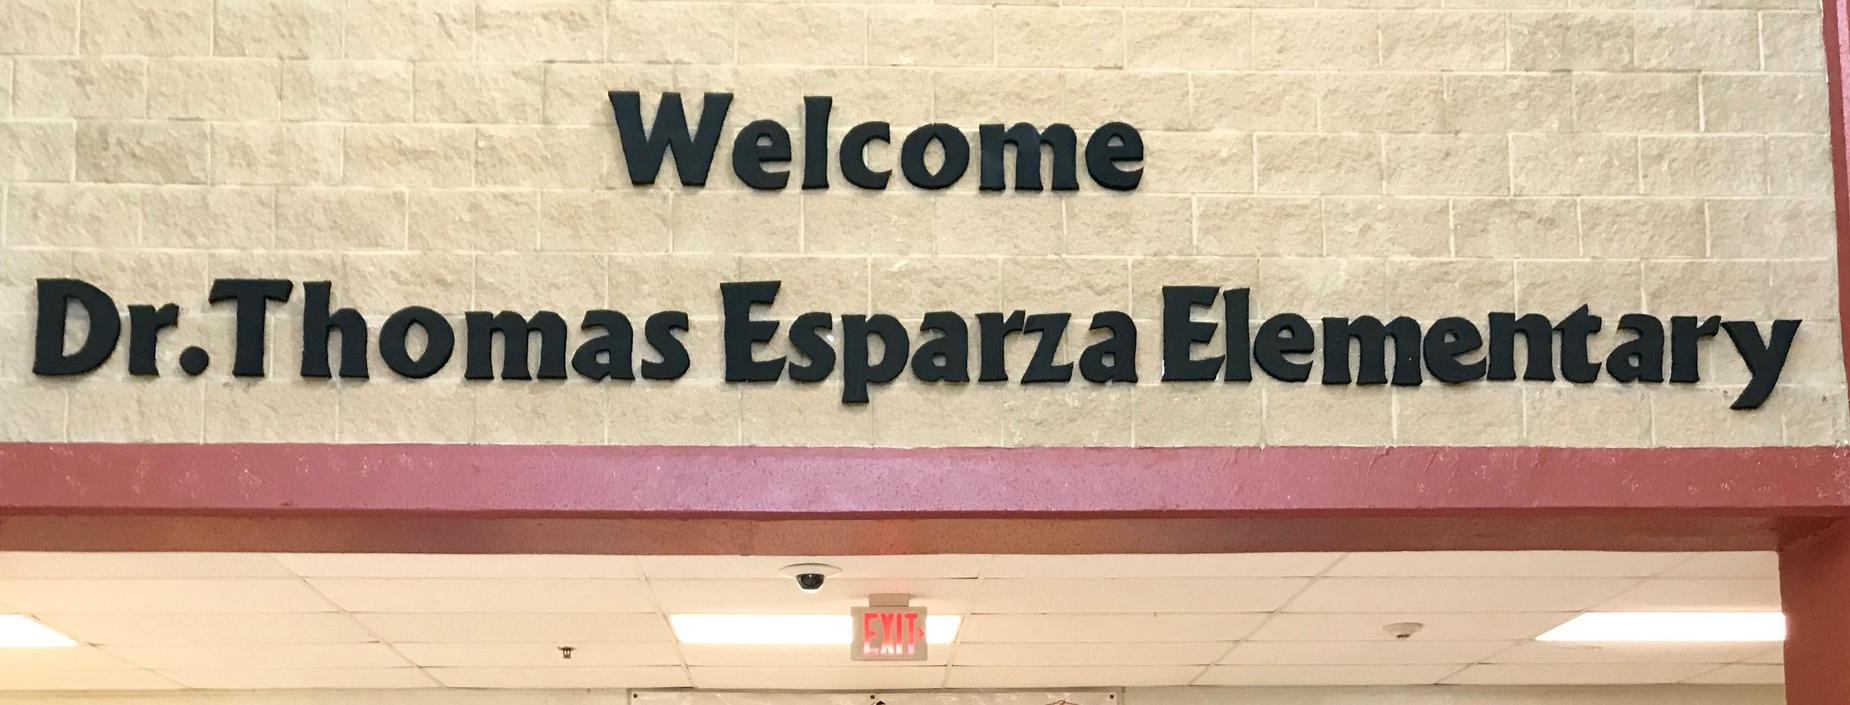 Welcome to Dr. Thomas Esparza Elementary